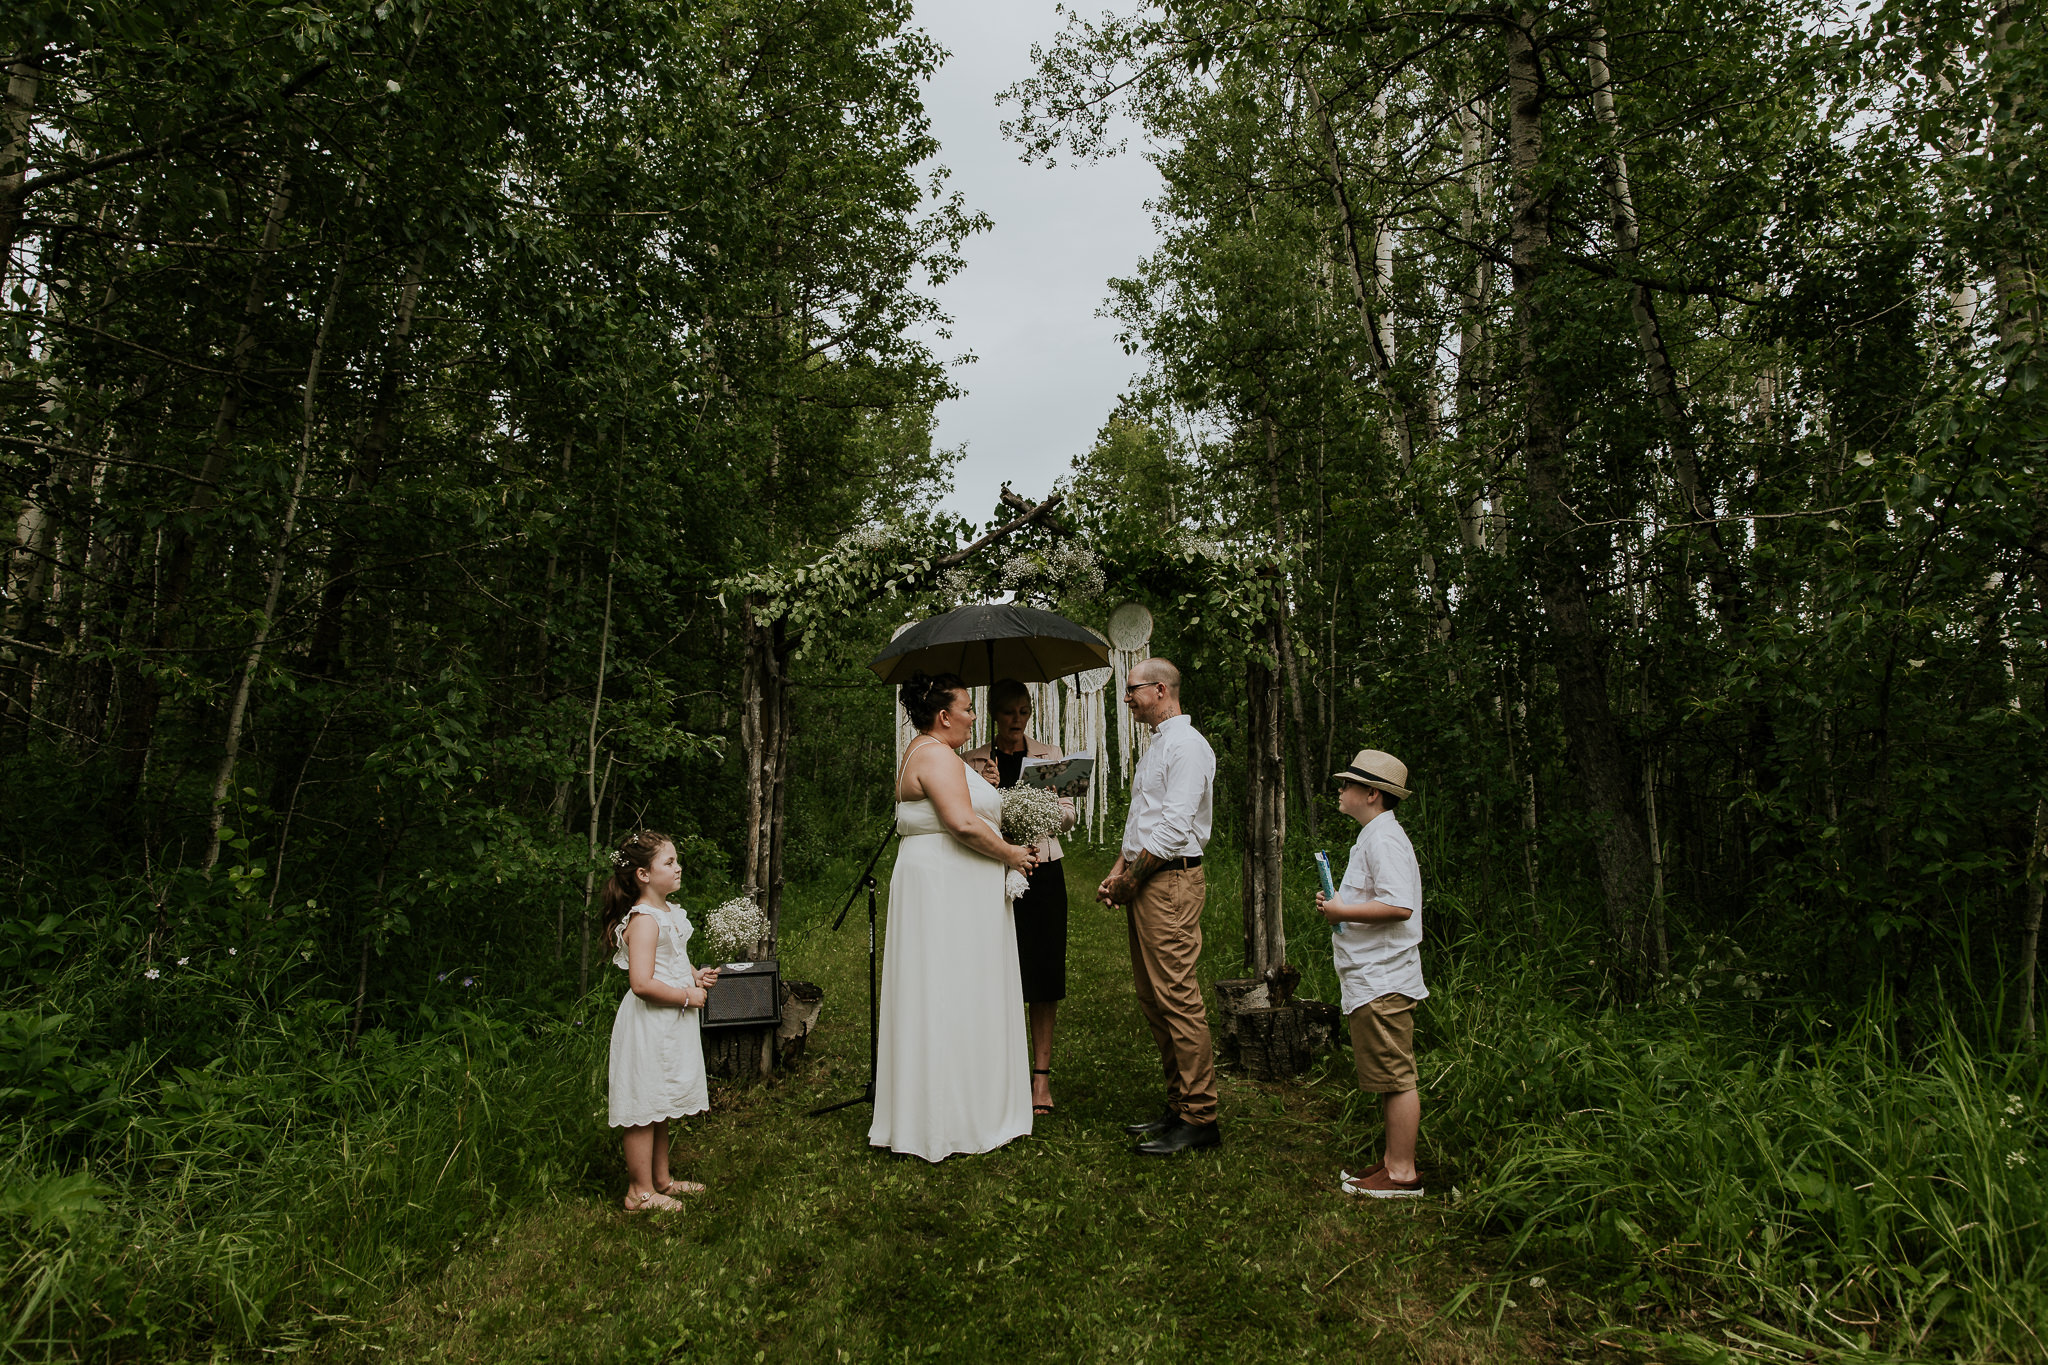 Intimate Bragg Creek backyard wedding ceremony with bride, groom and kids standing under DIY alter